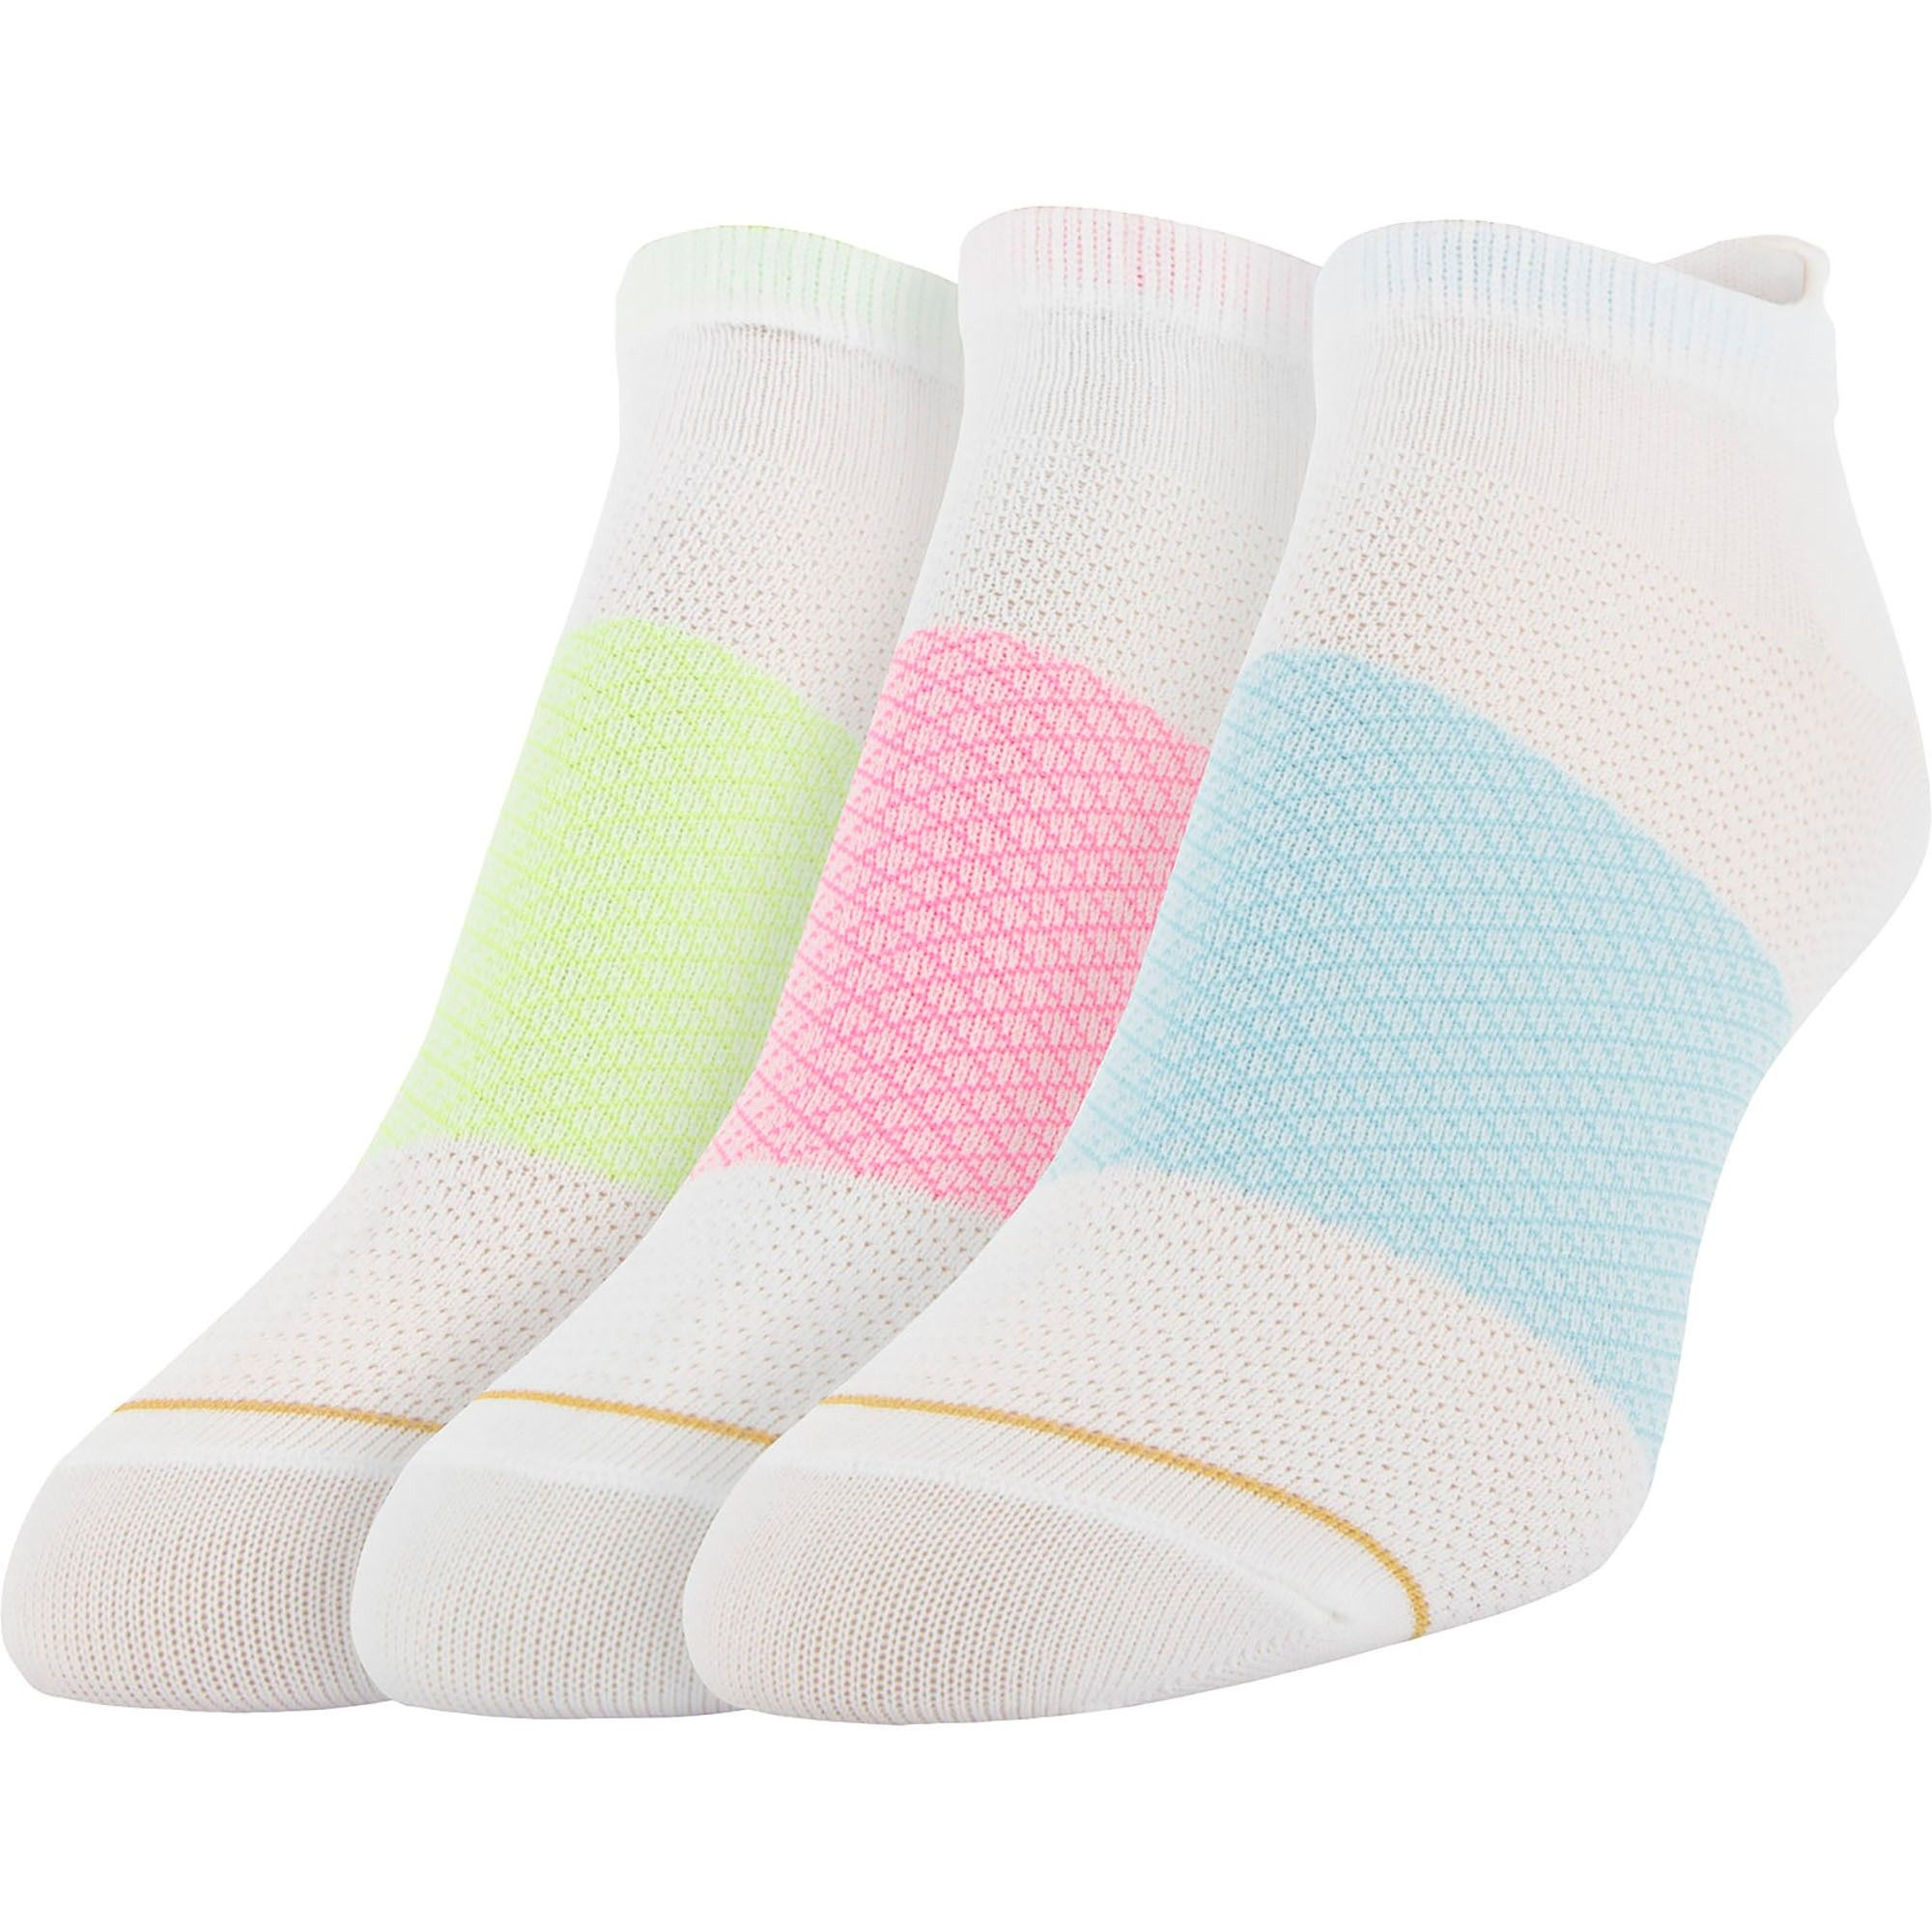 973ab488523 All Pro Women s Athletic Socks 3 Pk White 4-10